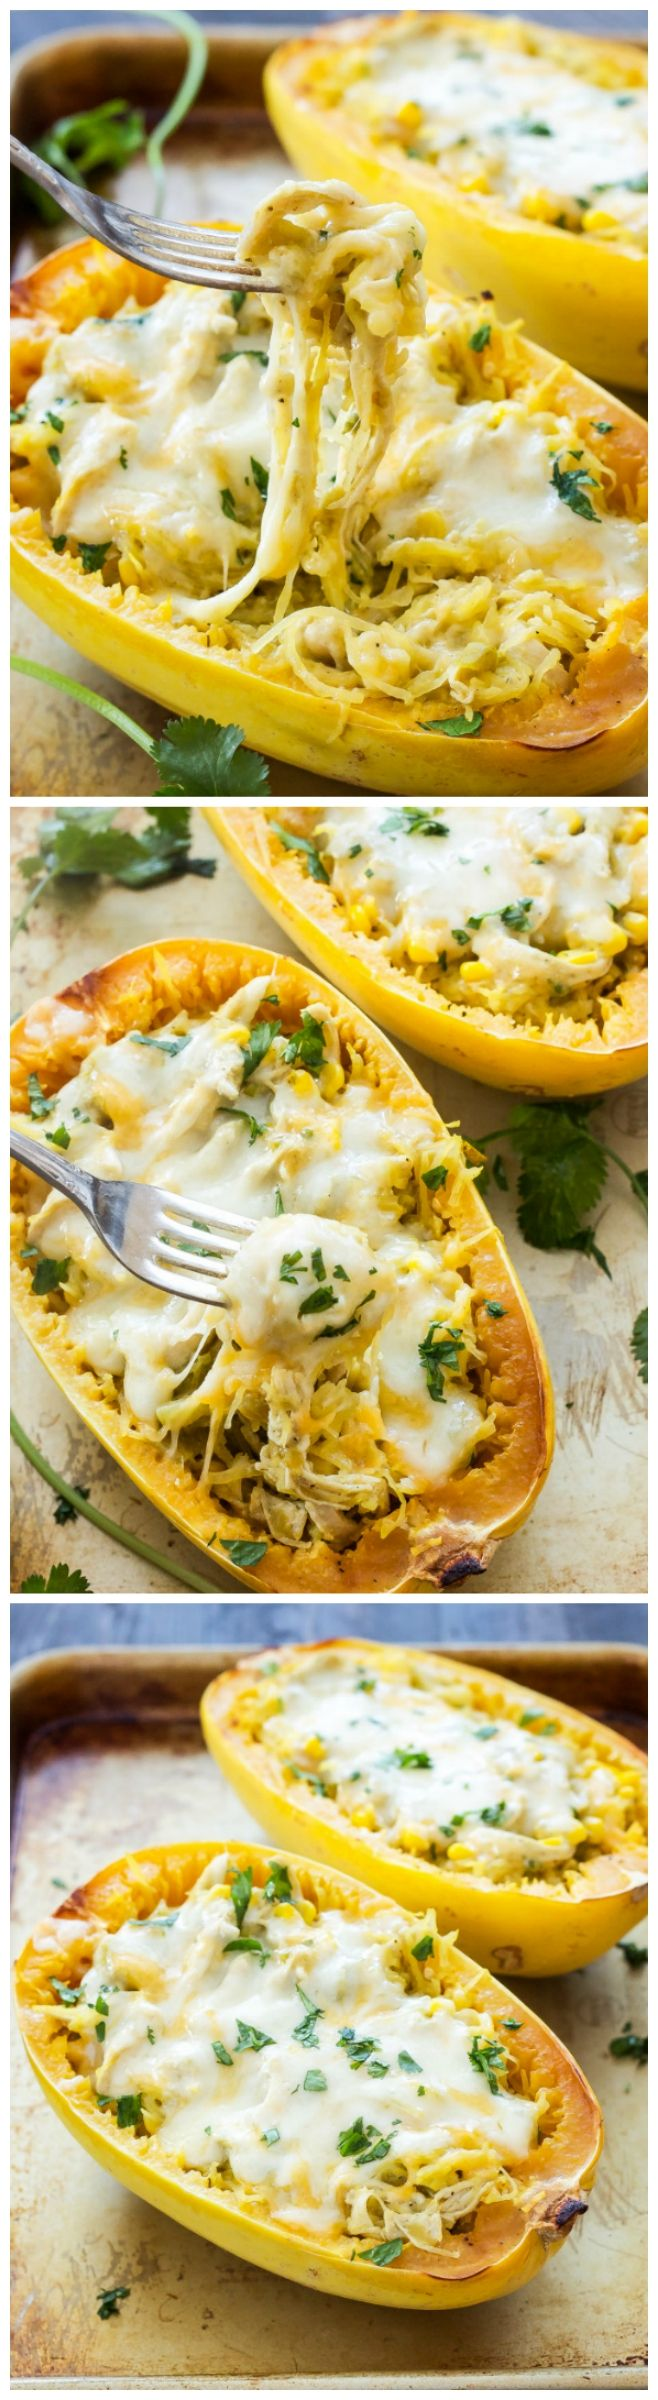 Green Chile Chicken Enchilada Stuffed Spaghetti Squash - Change up your enchilada game and stuff your filling in spaghetti squash instead! You won't miss the tortillas or time spent rolling up the enchiladas when you make this Green Chile Chicken Enchilada Stuffed Spaghetti Squash!